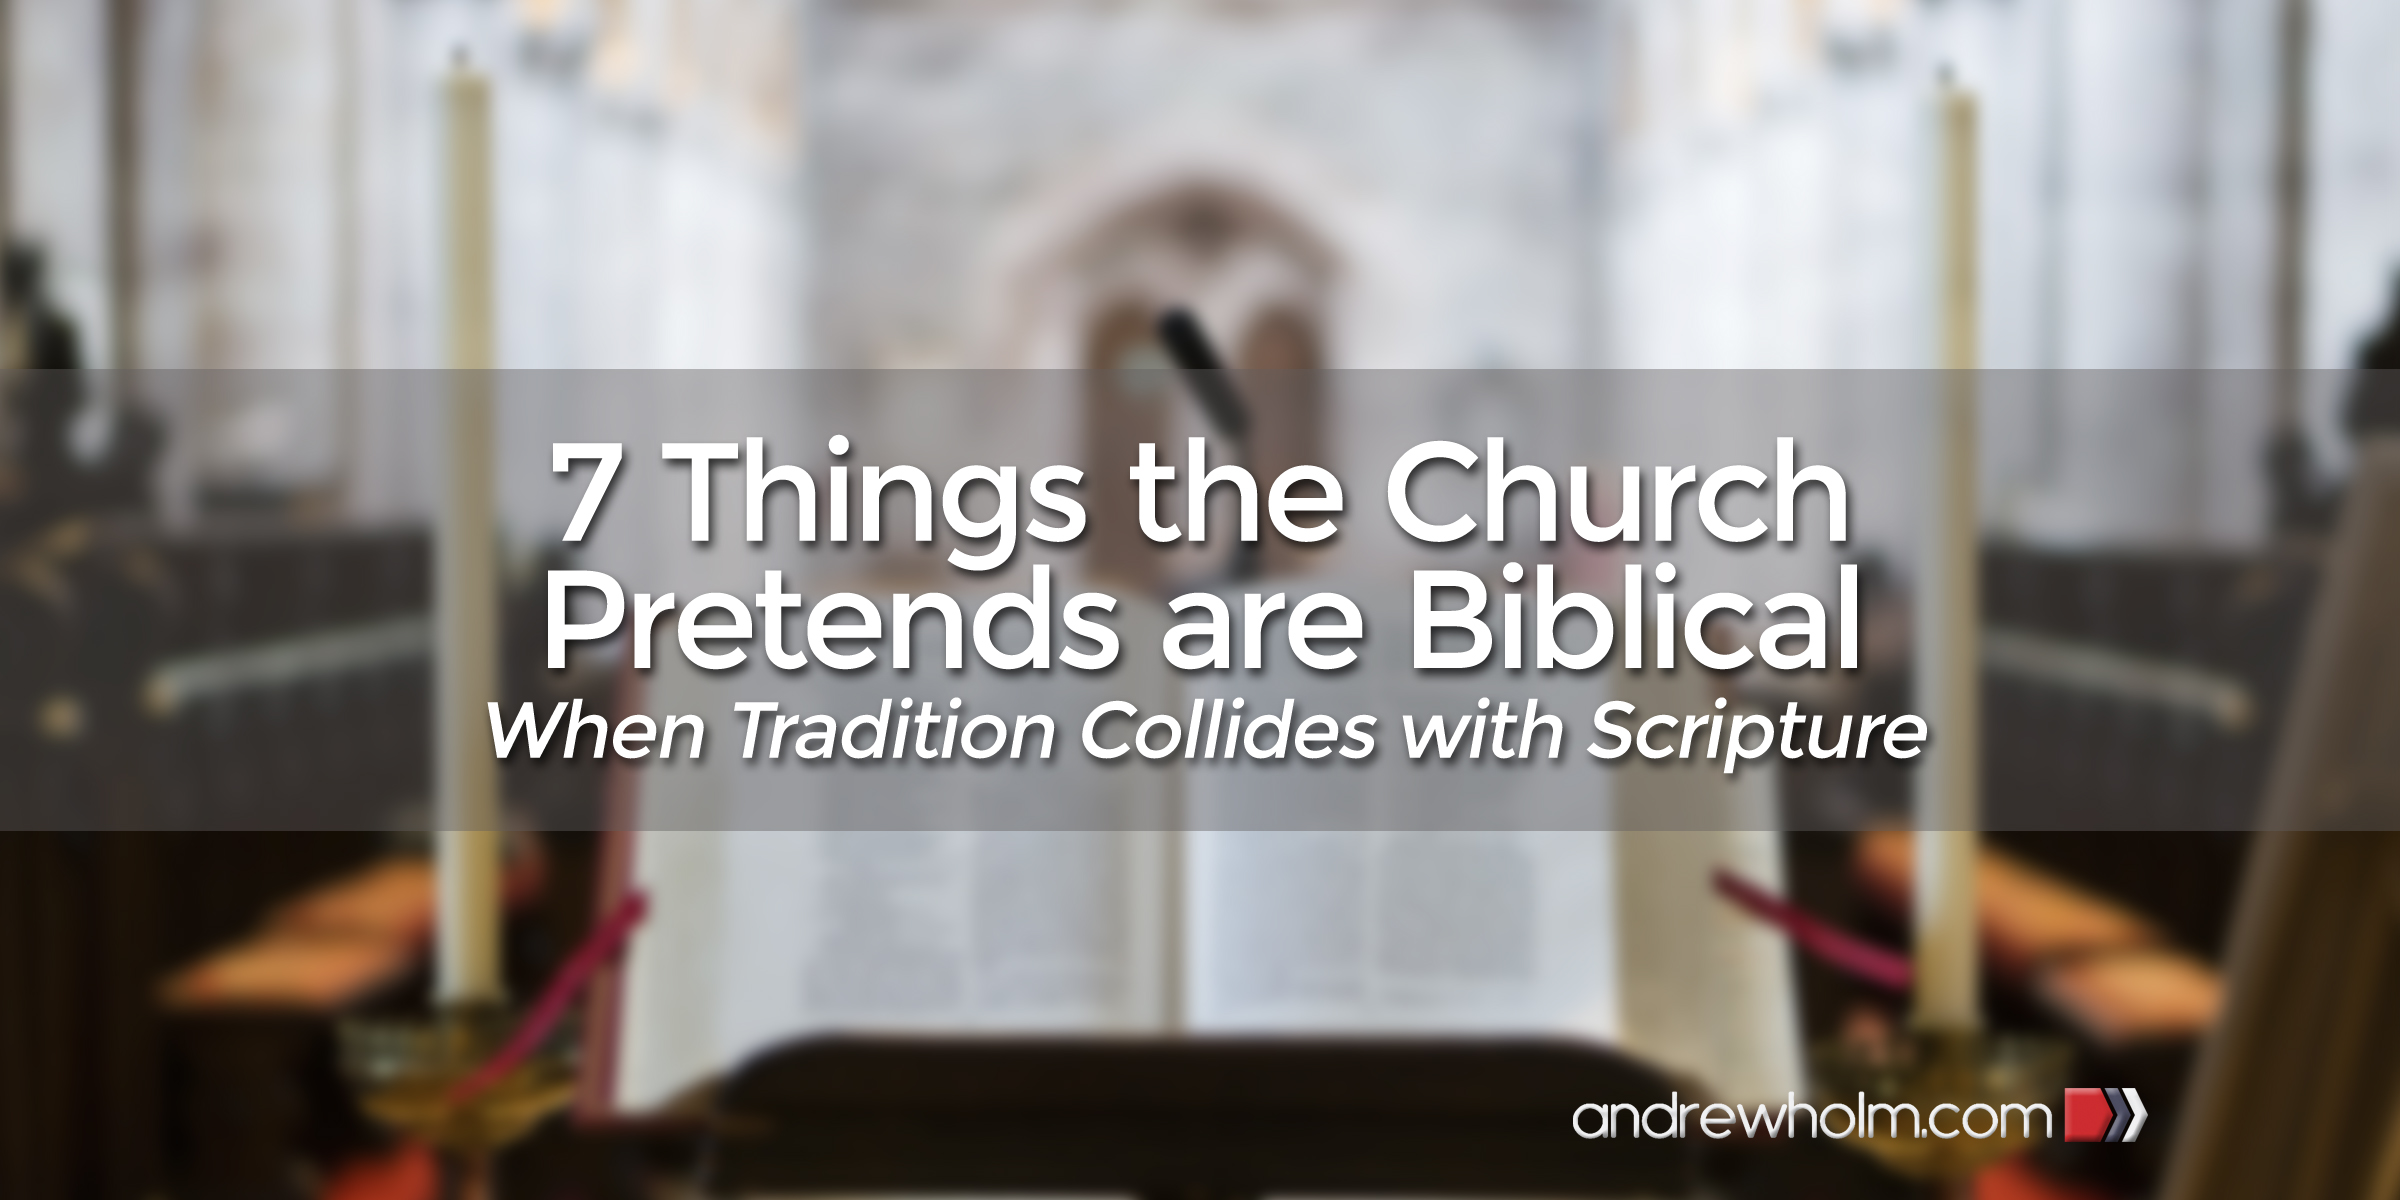 7 Things the Church Pretends are Biblical